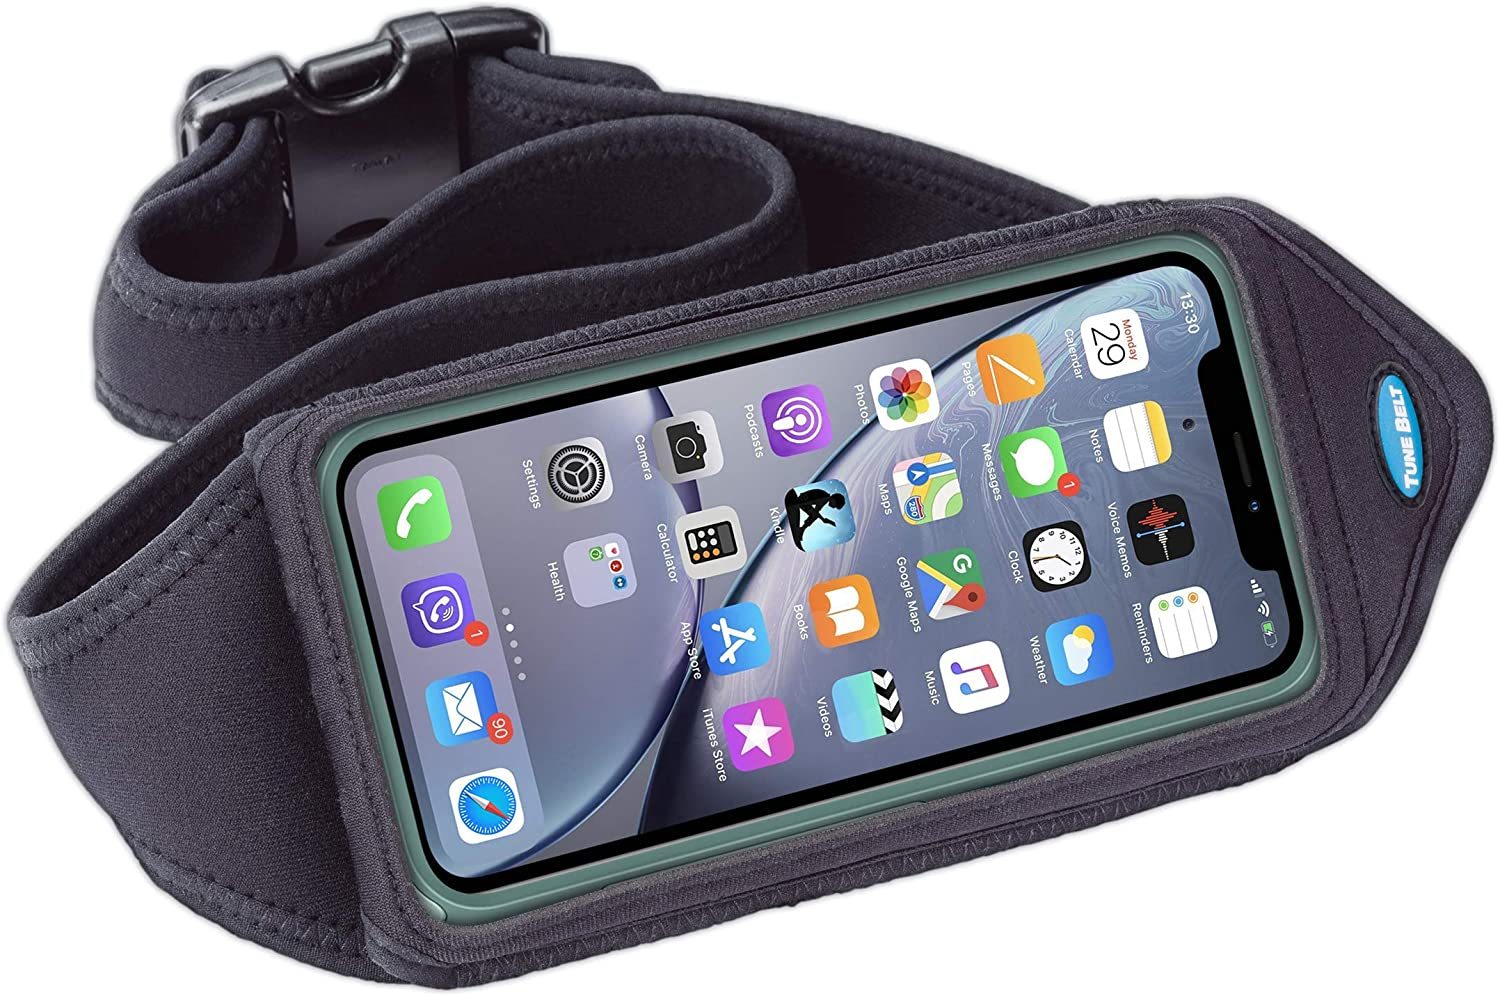 Tune Belt Running Waist Pack for iPhone 11, 11 Pro Max, Xr, Xs Max, iPhone 7 8 Plus, Samsung Galaxy S10 S9 S8 , Note 10 9 8 – Workout Pouch fits Large Phones with OtterBox Large Case Black